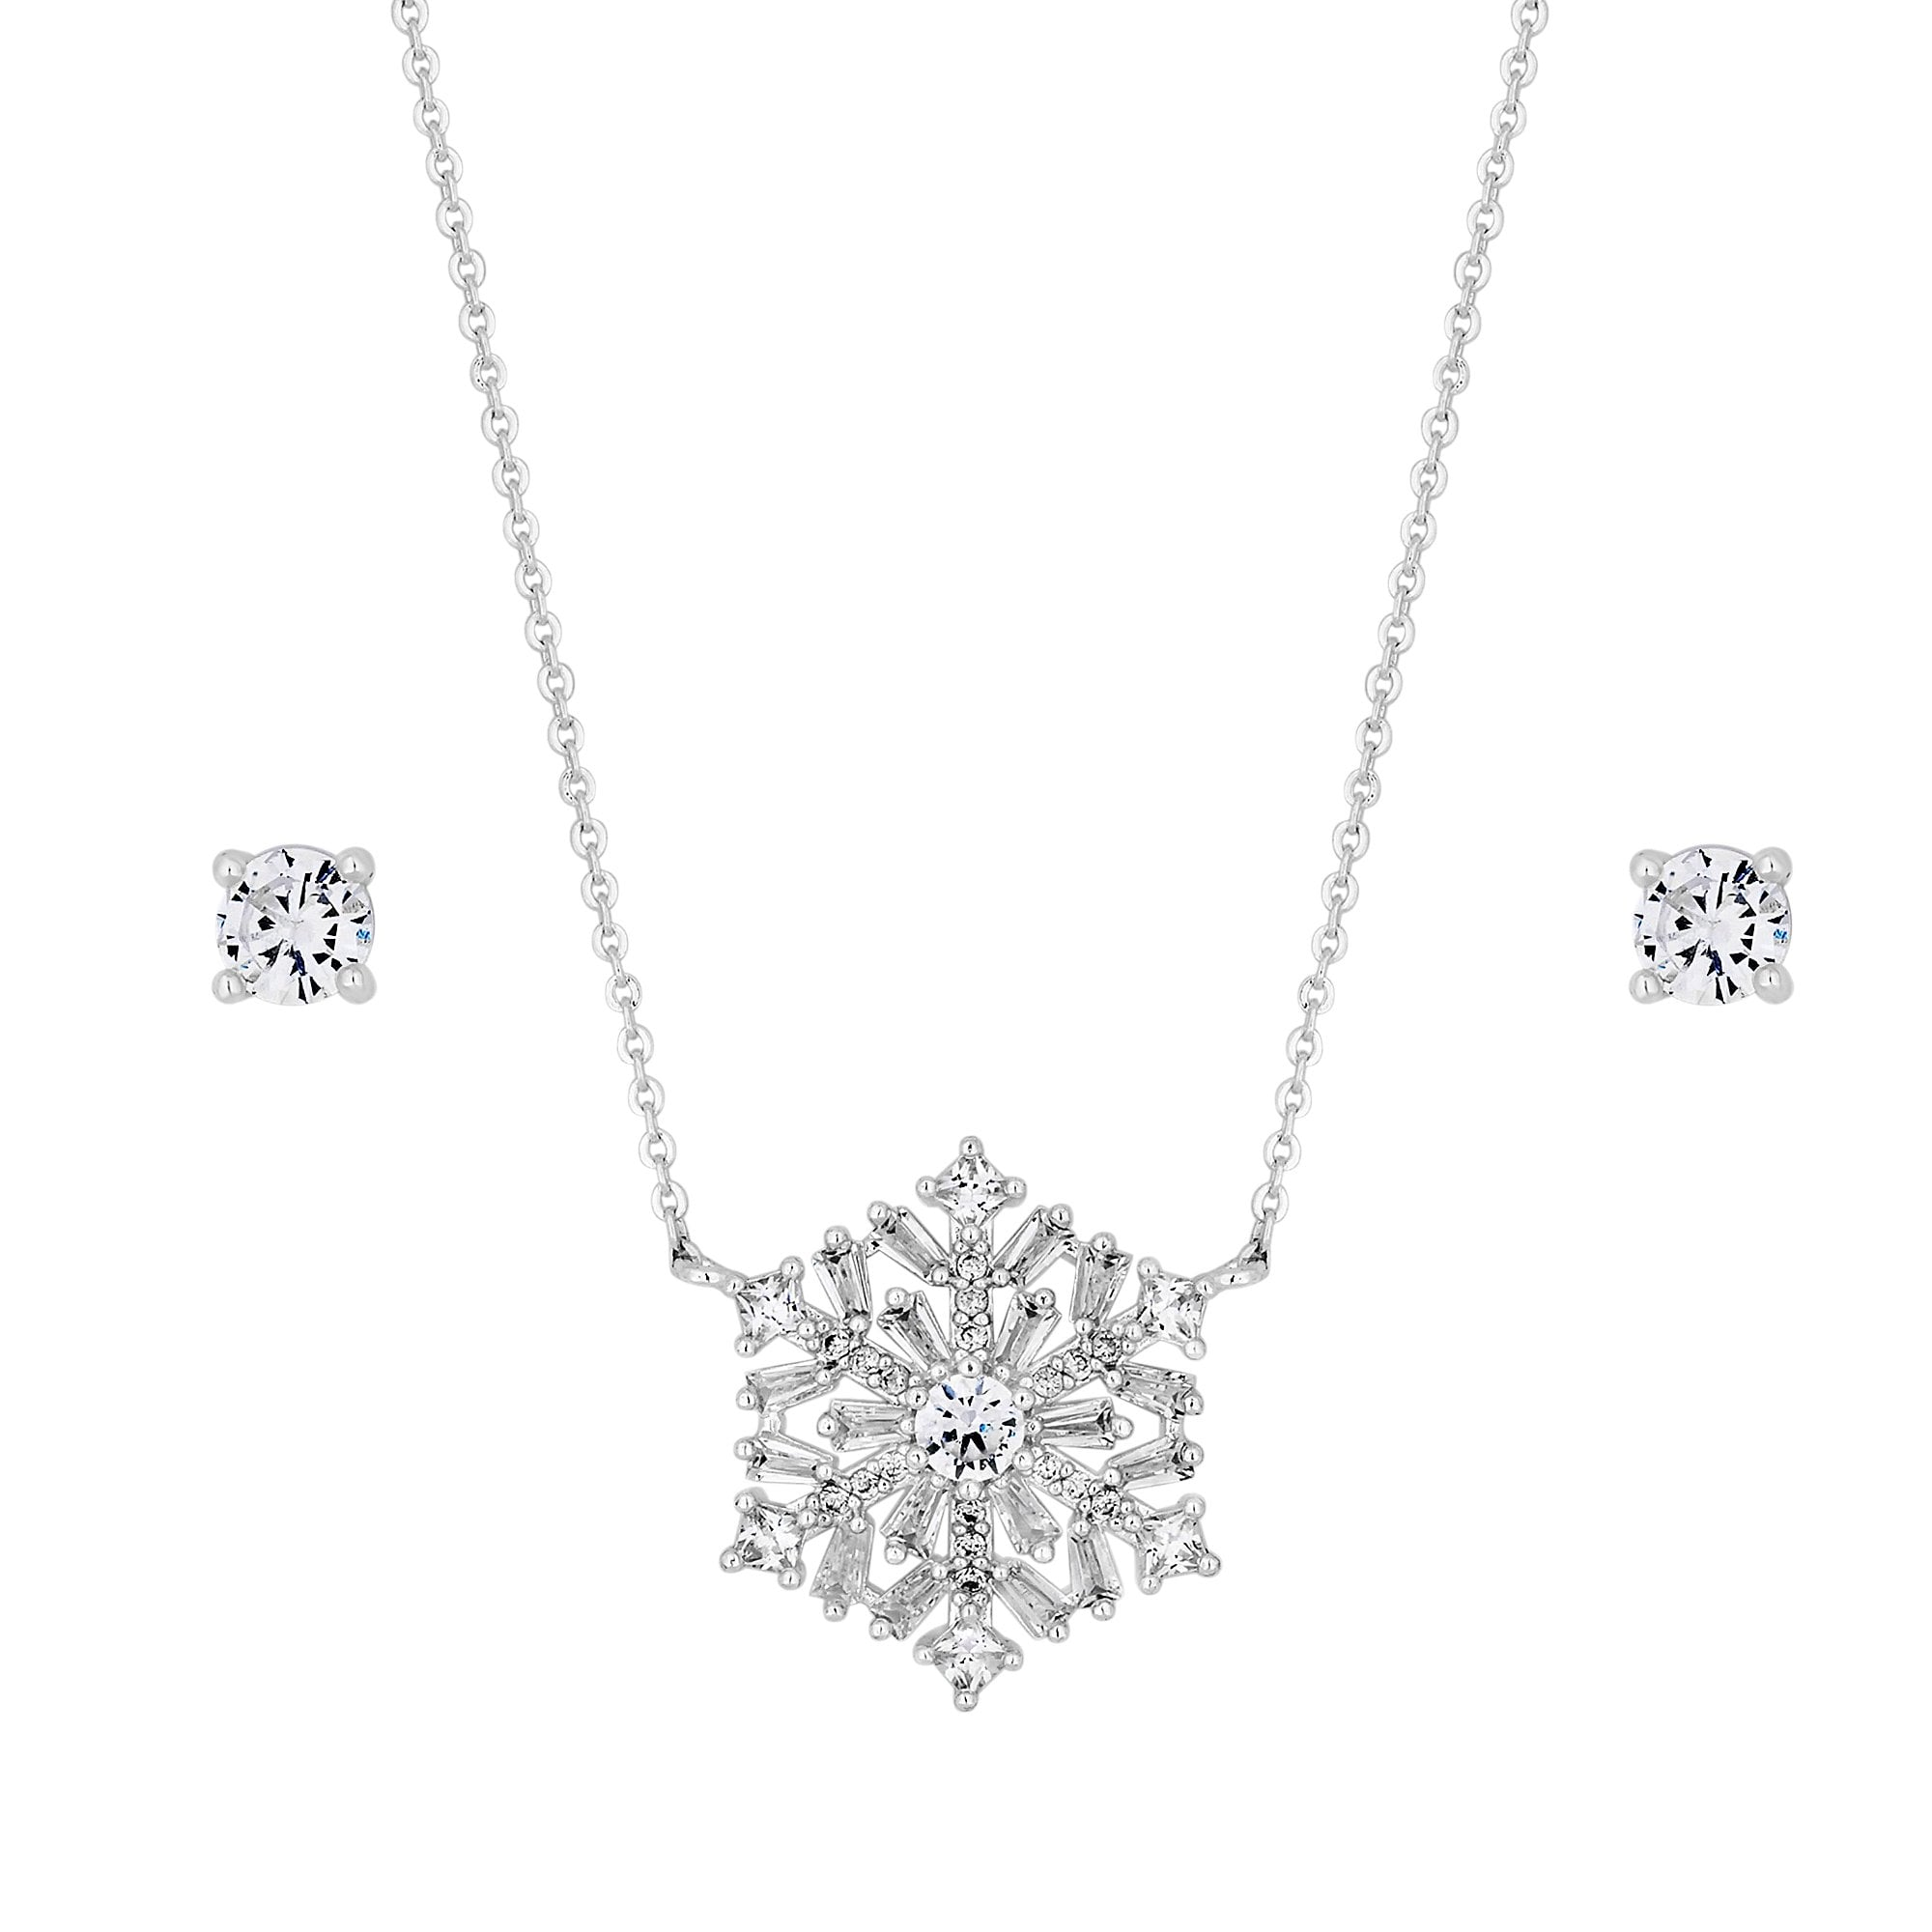 Silver Plated Cubic Zirconia Snowflake Necklace And Earring Set Gift Boxed